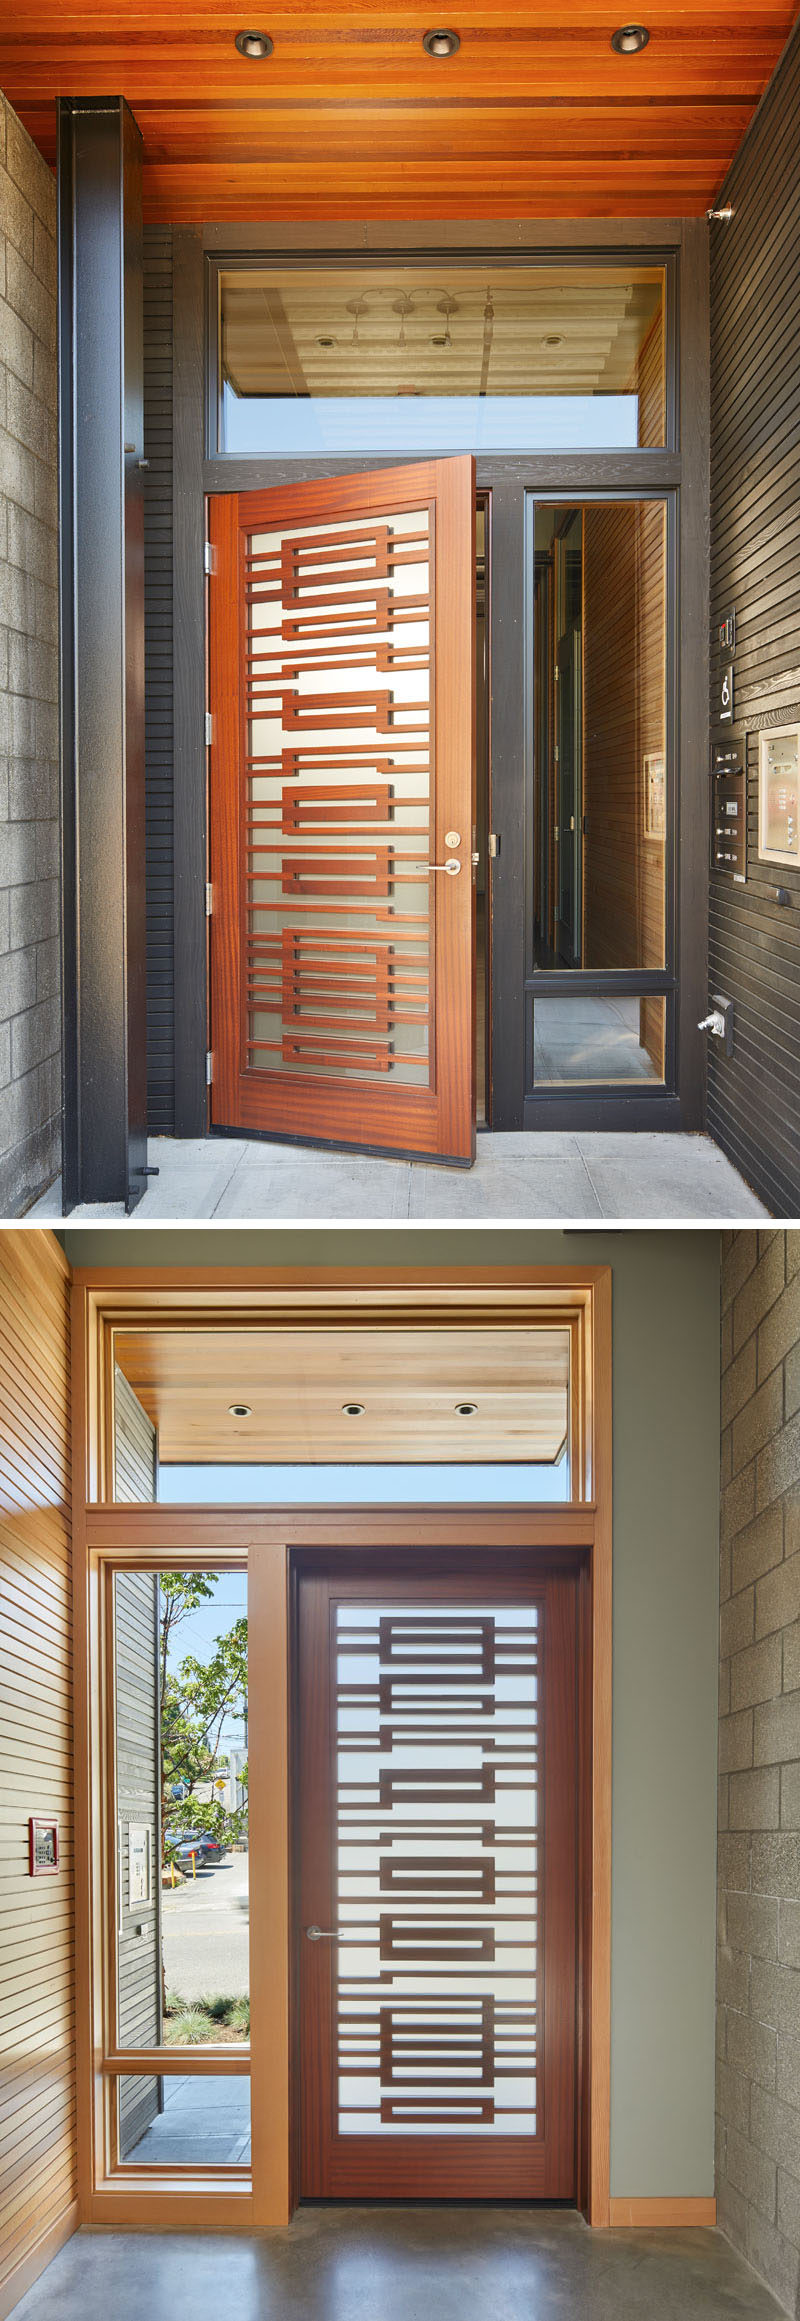 The entrance to this modern live-work building features a custom sapele wood front door that adds a warm touch to the building and contrasts the building's blackened wood cladding.